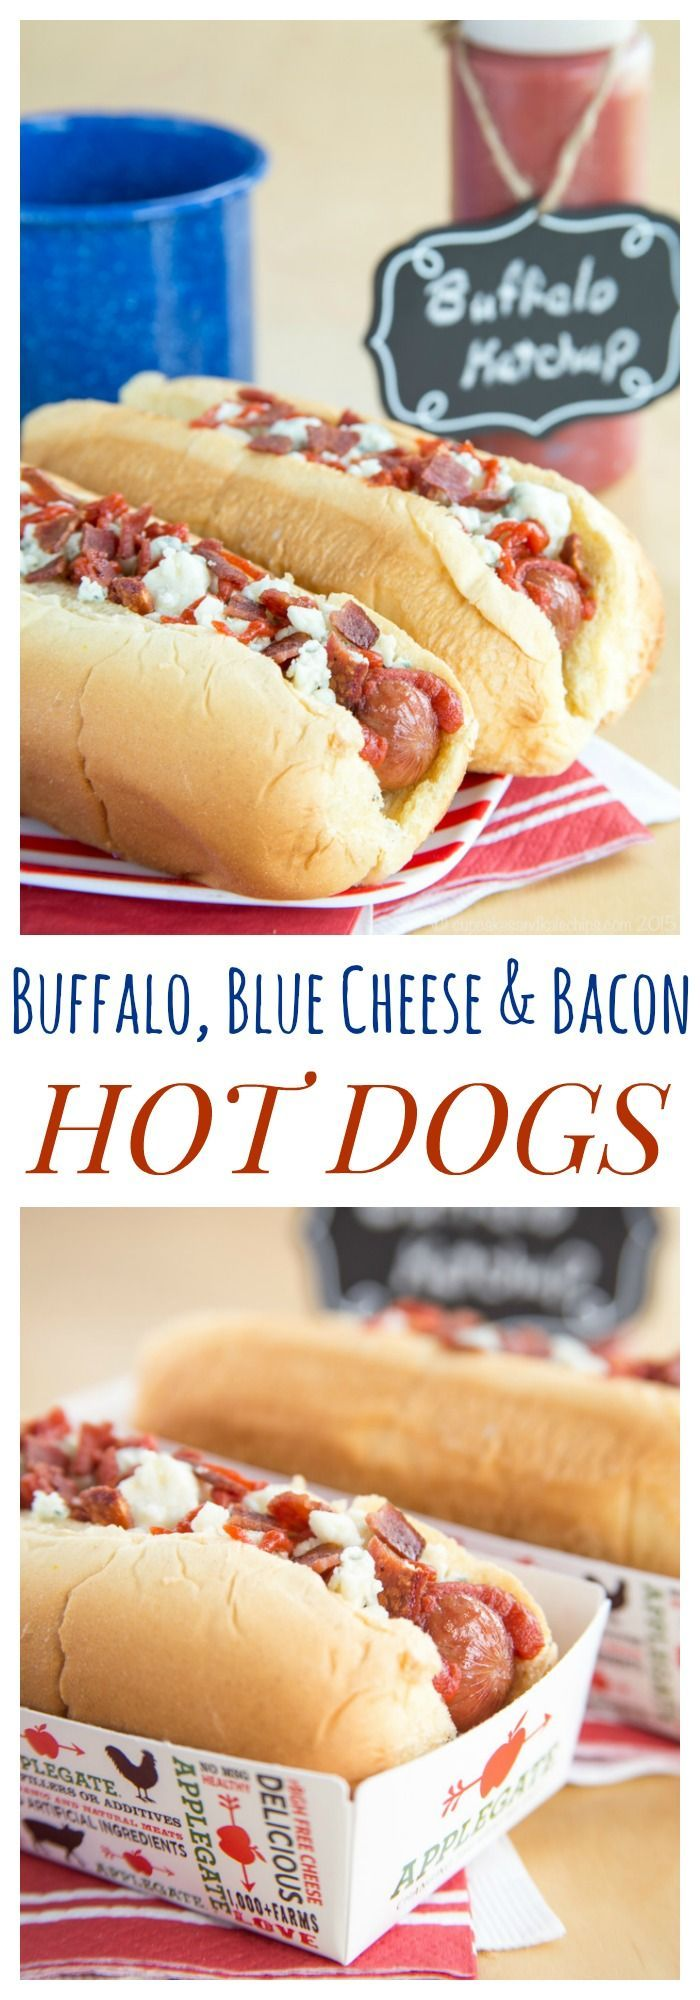 Buffalo, Blue Cheese, and Bacon Hot Dogs - add a spicy kick and a ton of flavor to the classic hot dog. Your barbecue will never be the same!   cupcakesandkalechips.com